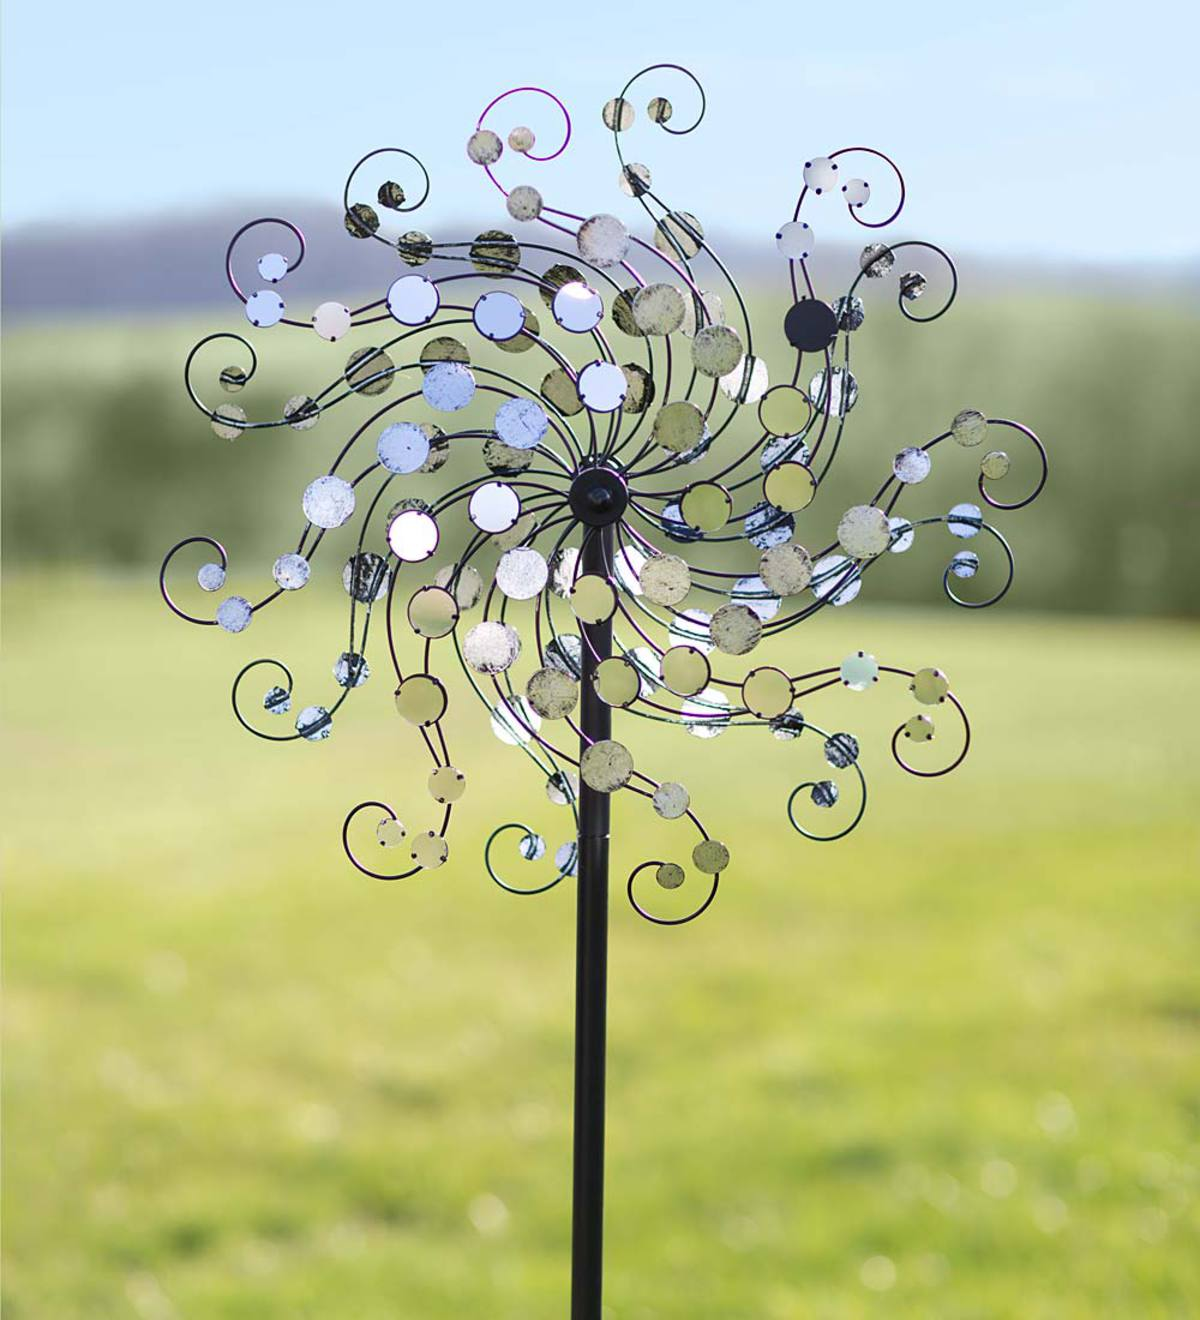 Dual-Rotor Spiral Metal Wind Spinner with Shiny Mirror Discs